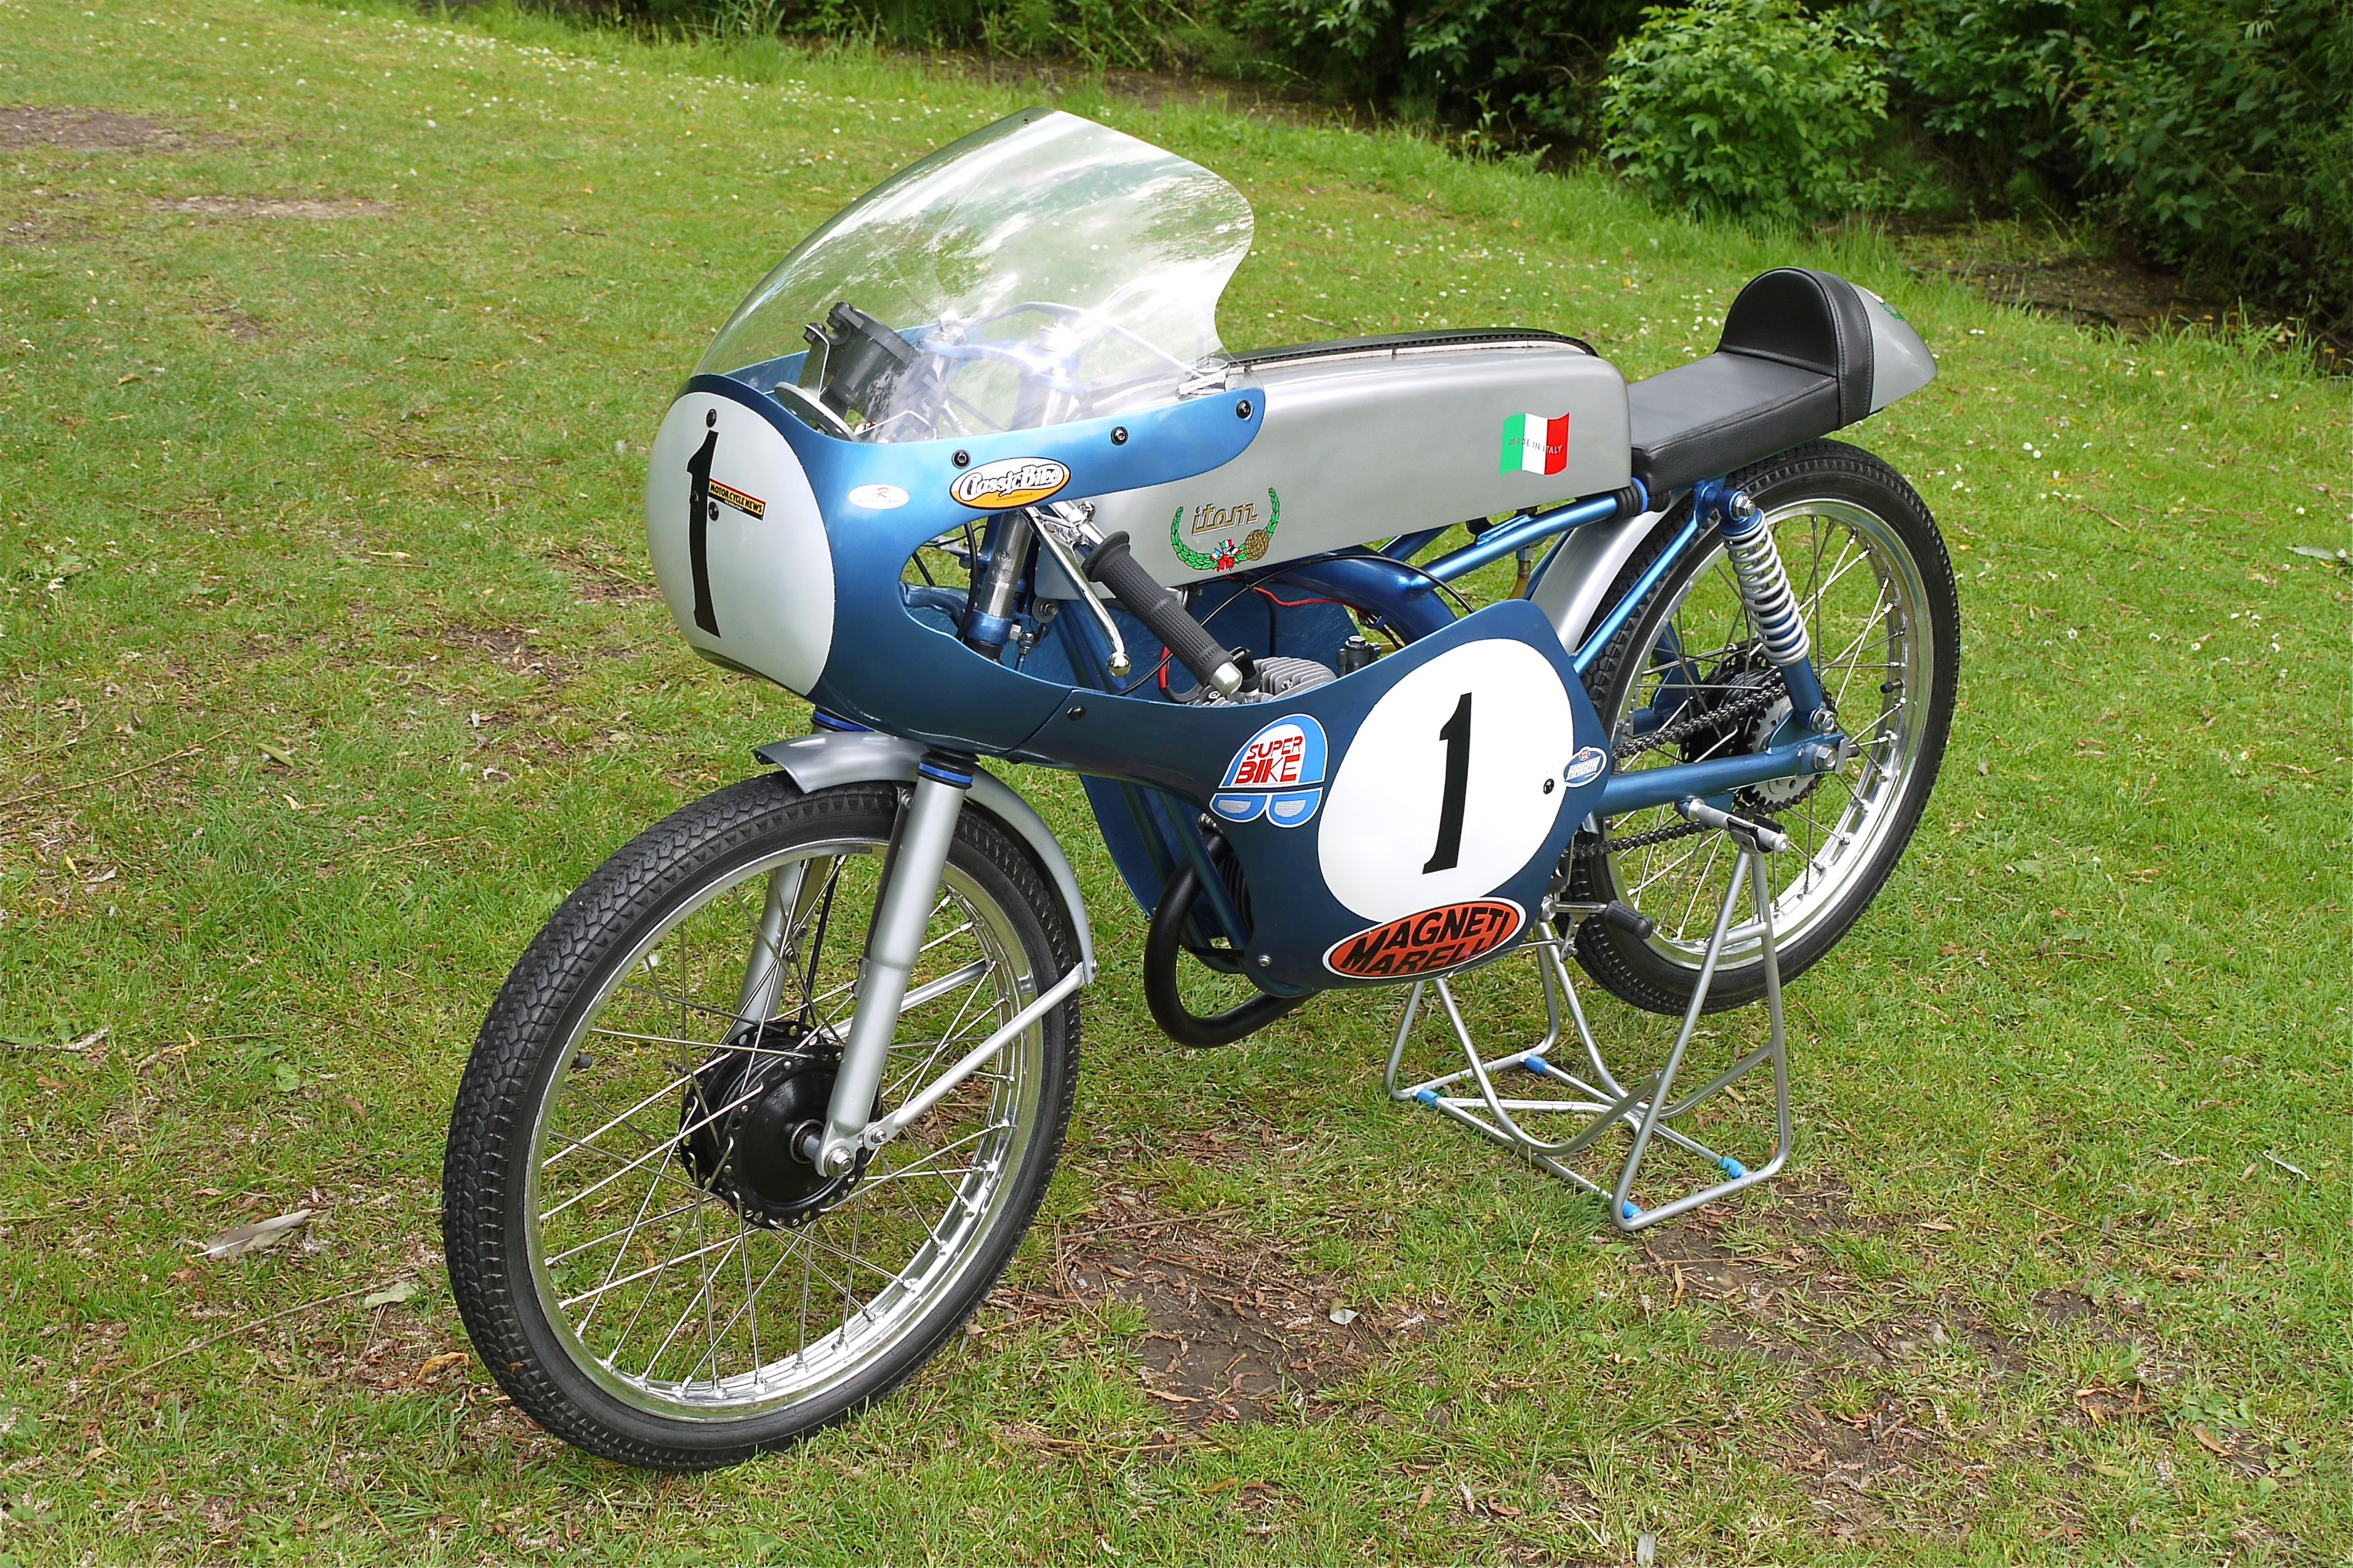 50cc motorcycles: